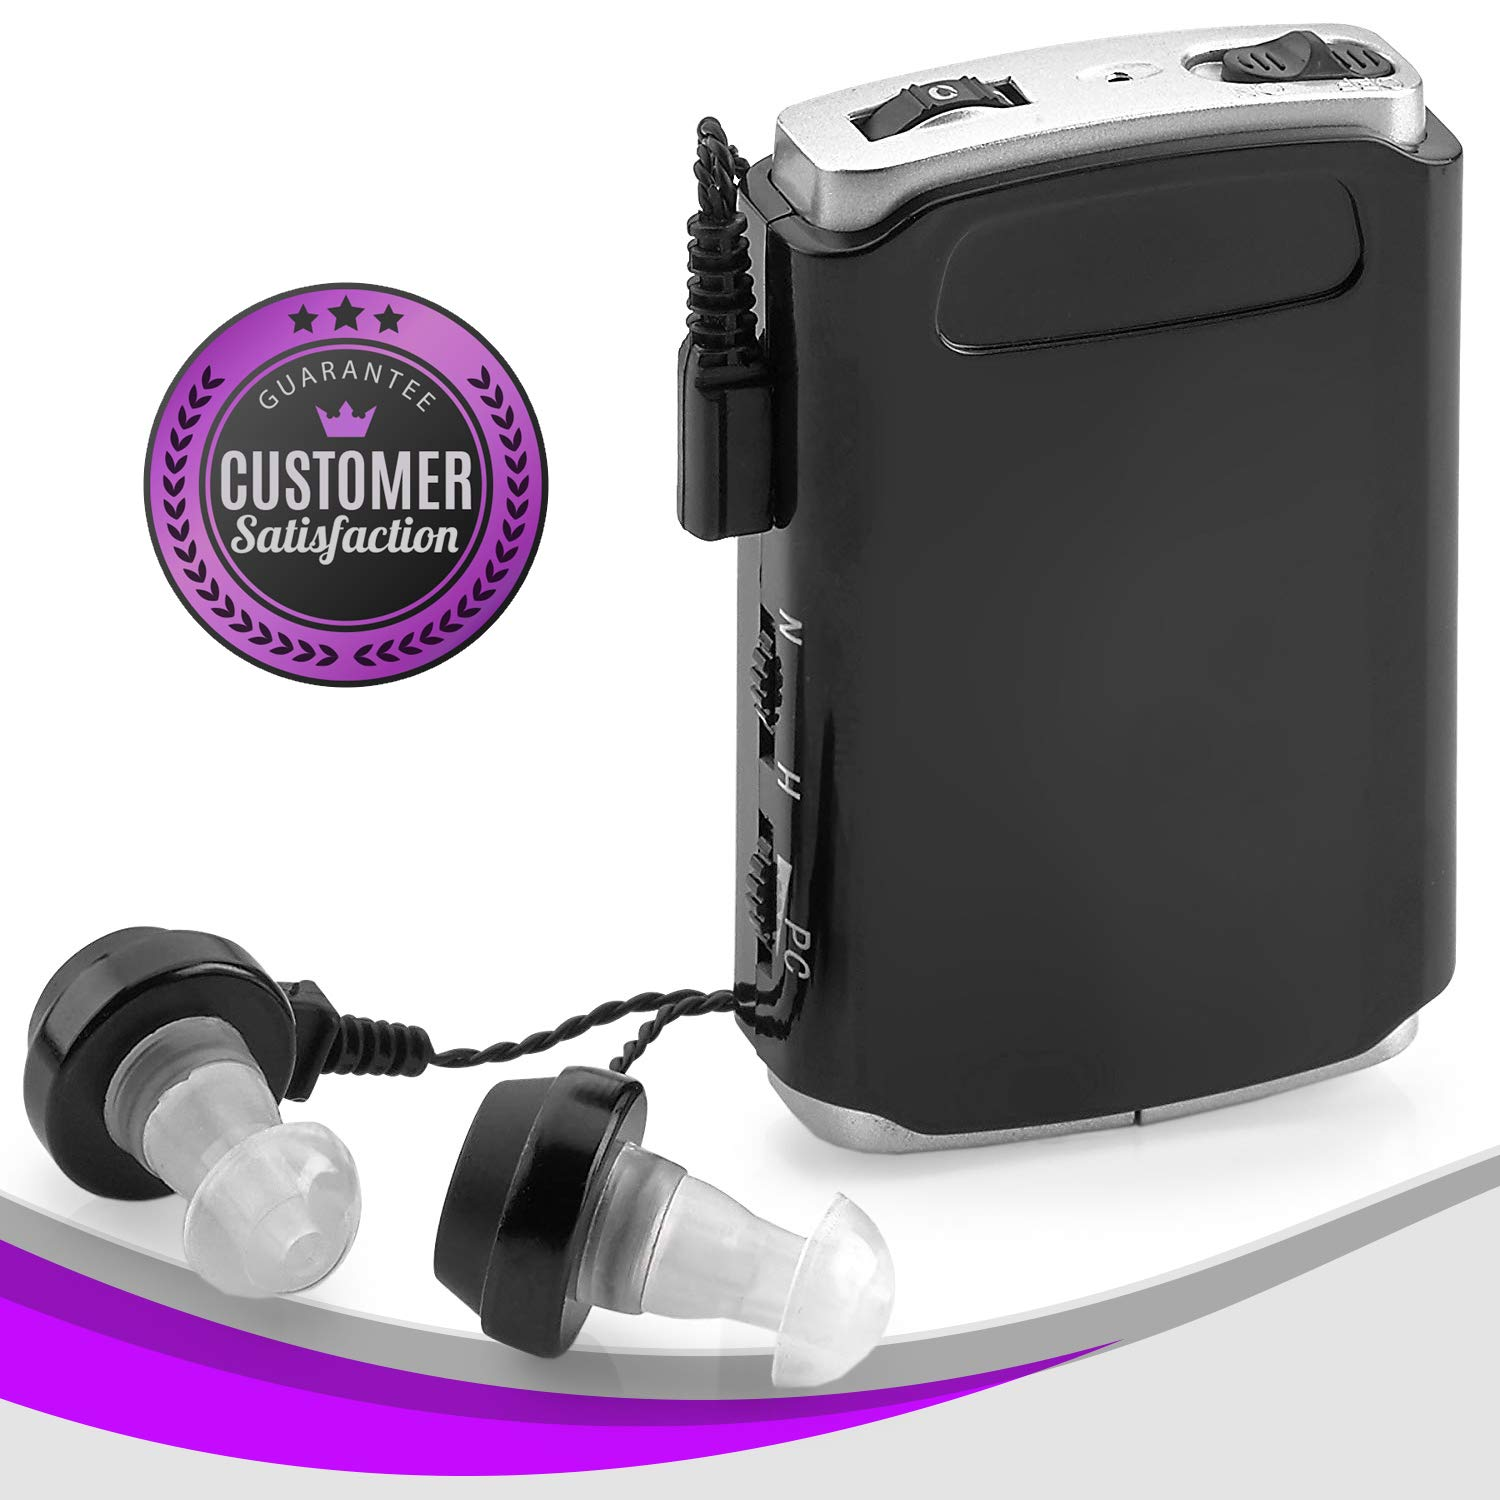 Sound Amplifier - Pocket Sound Voice Enhancer Device with Duo Mic/Ear Plus Extra Headphone and Microphone Set, Personal Hearing Amplifier Device by MEDca by MEDca